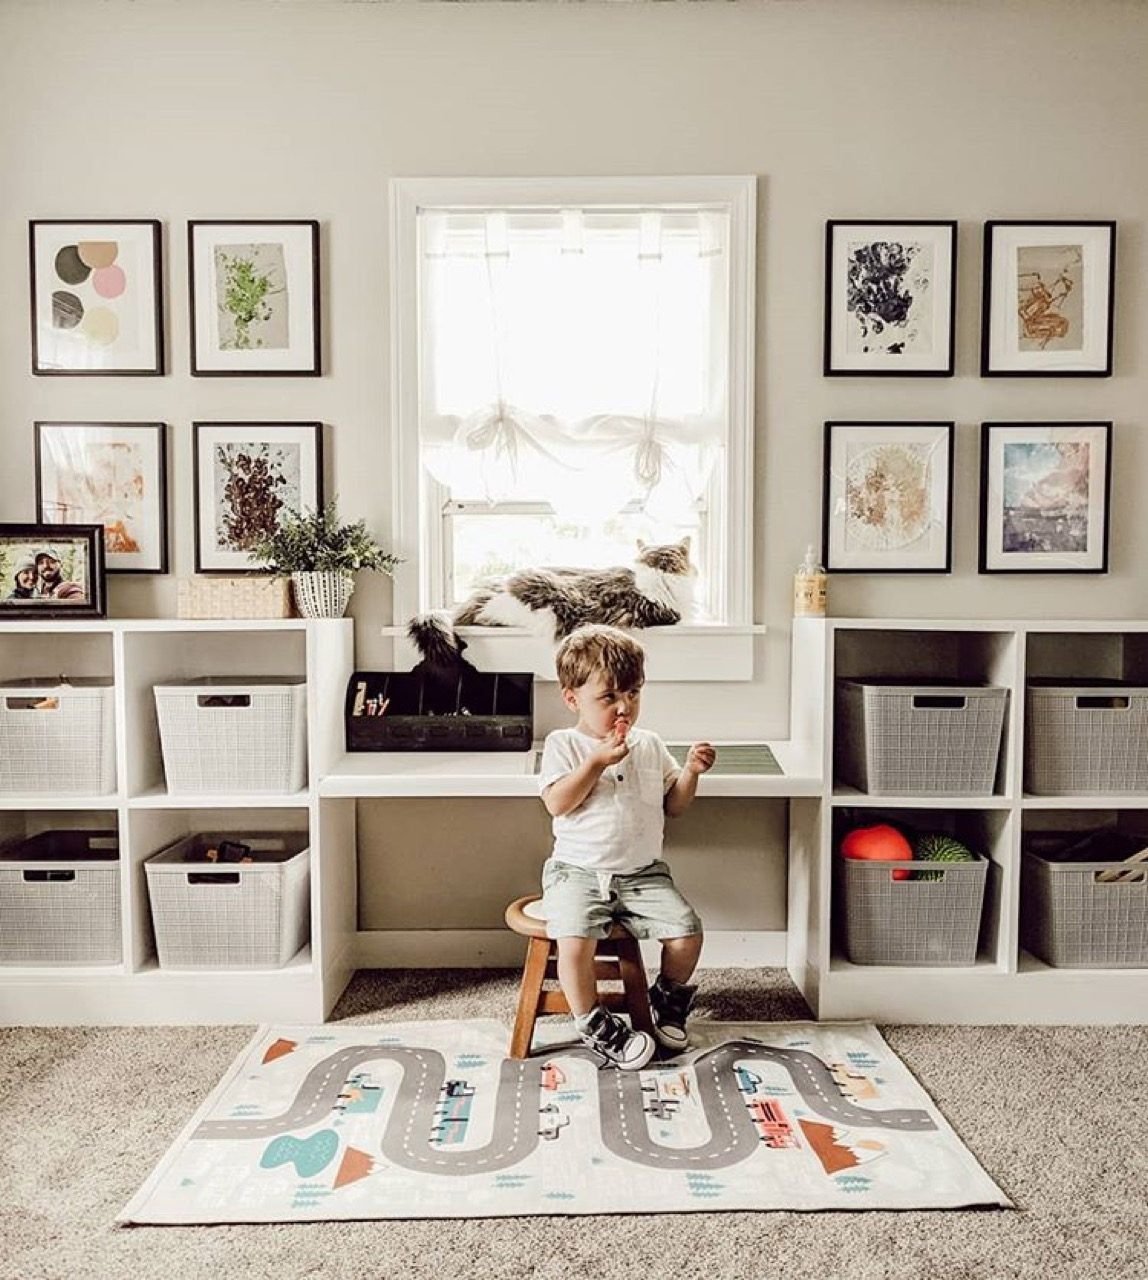 Child sitting in bedroom